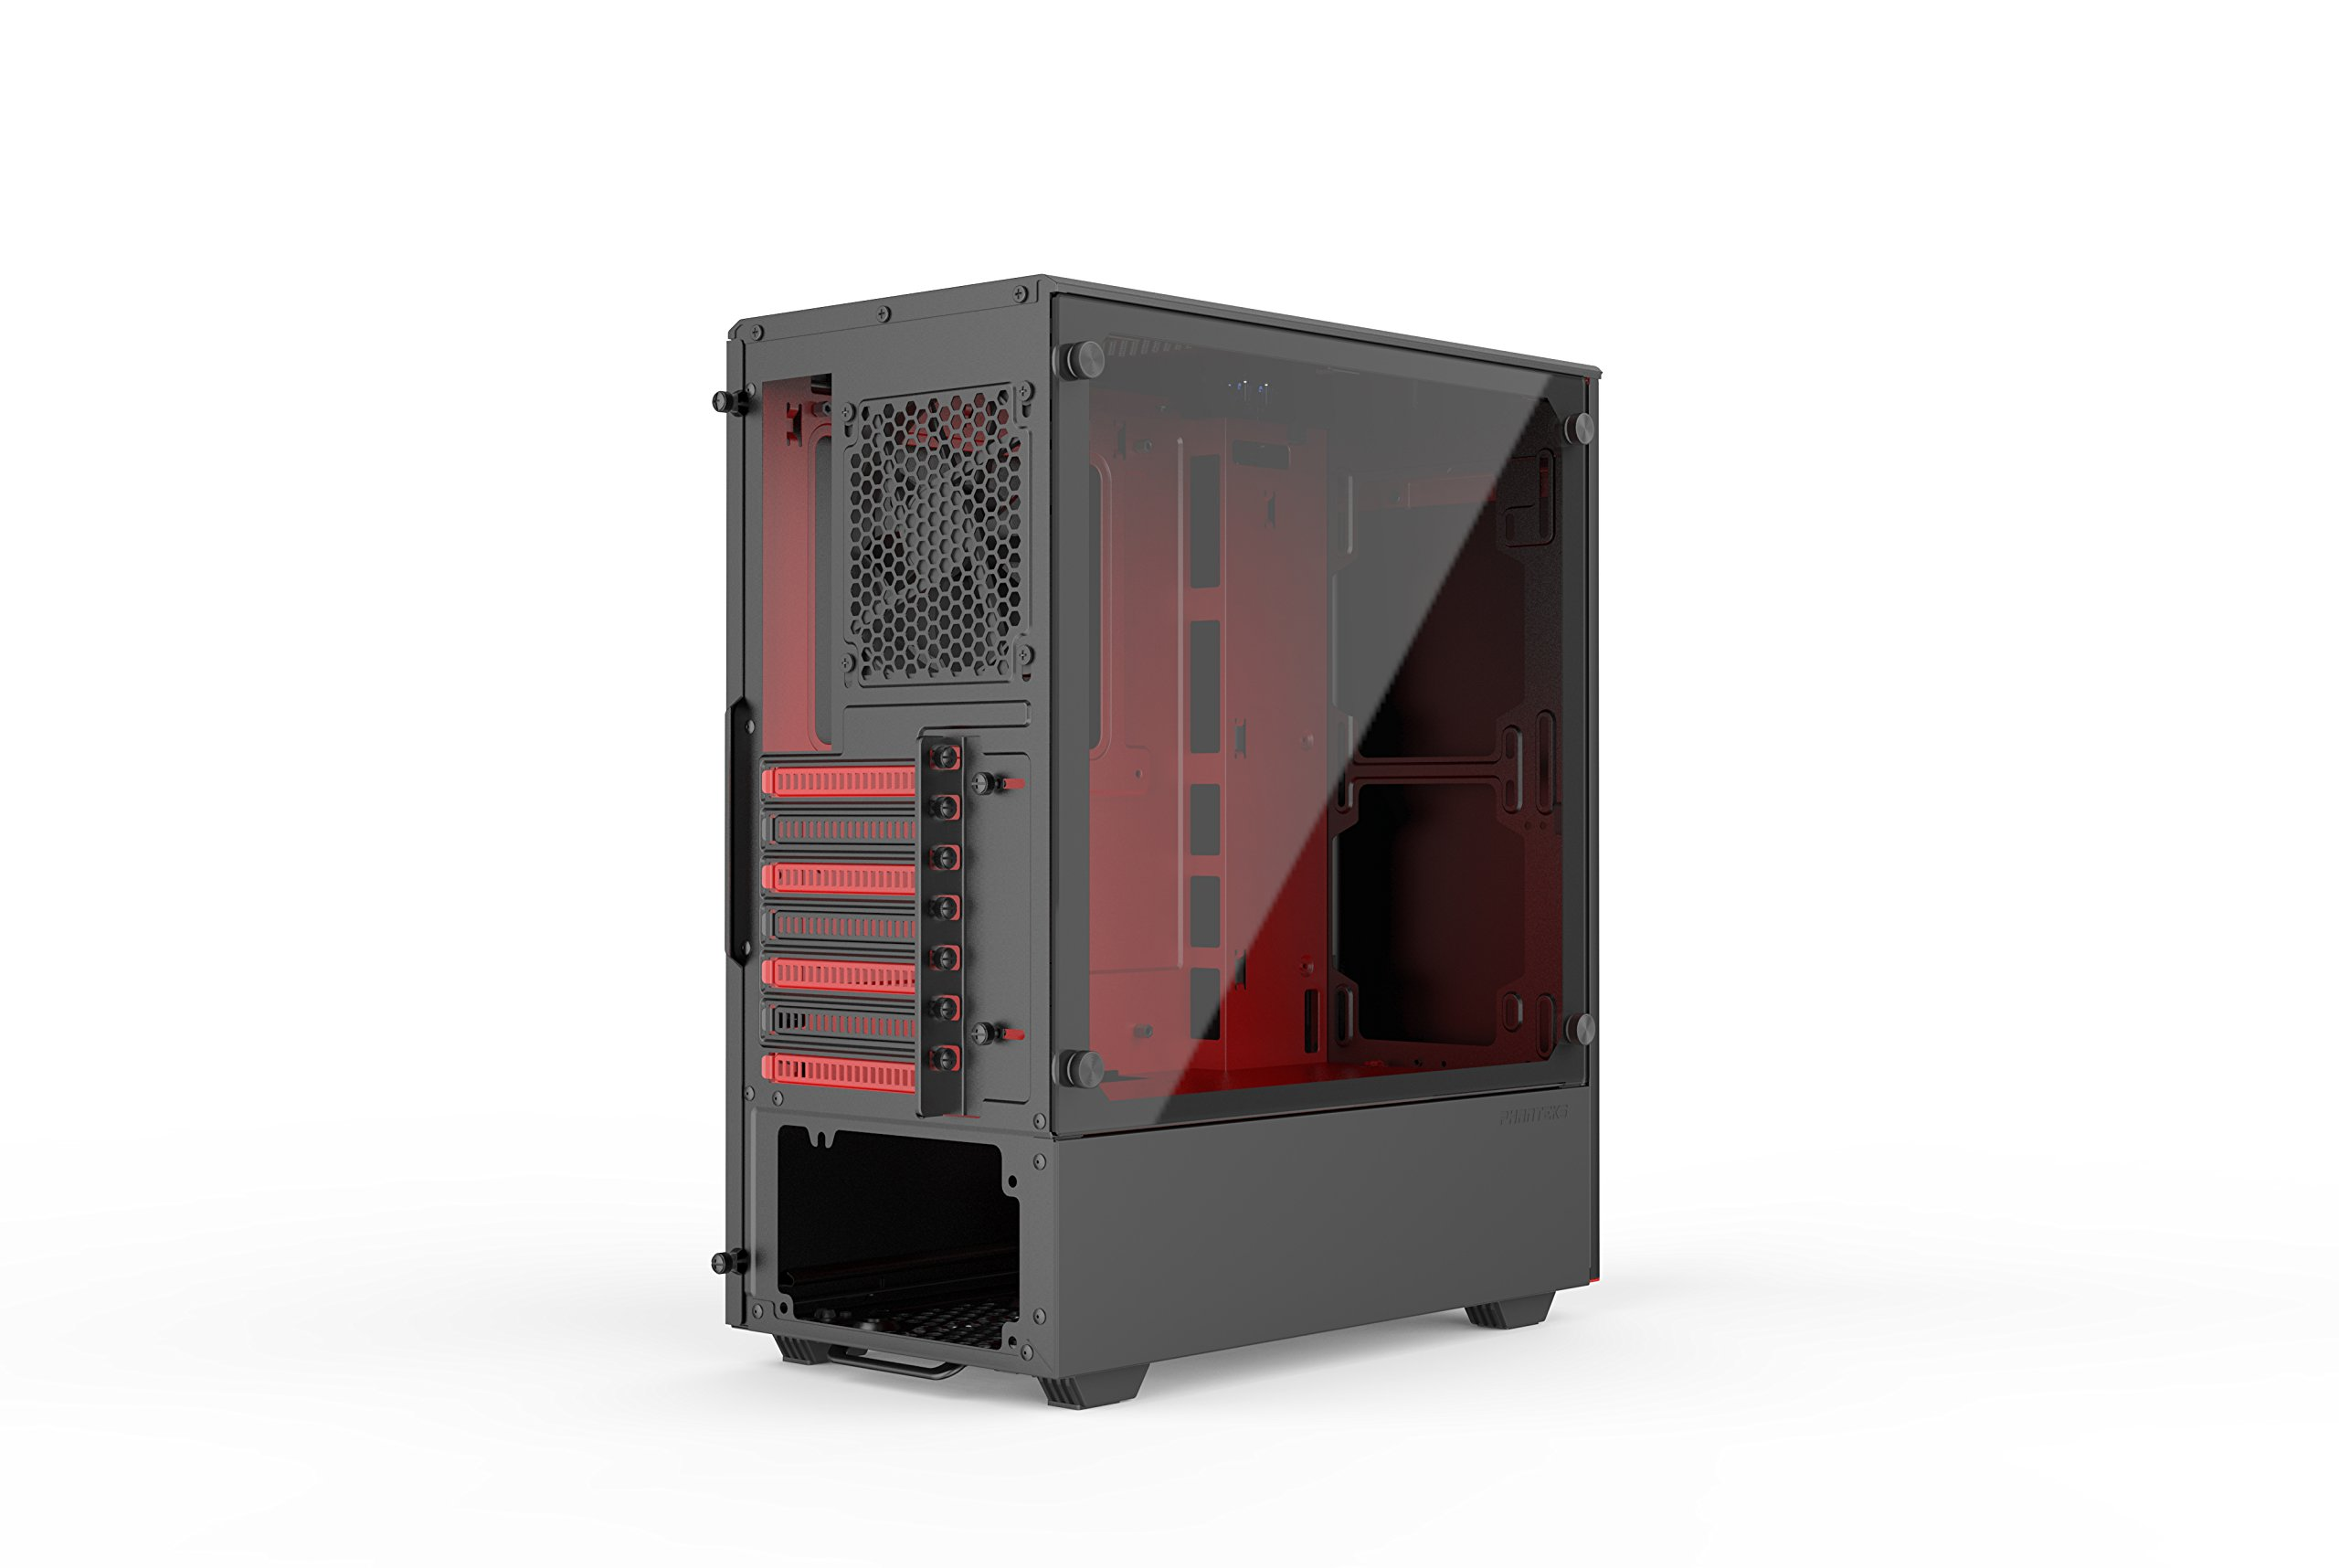 Phanteks PH-EC300PTG_BR Eclipse P300 Tempered Glass Steel ATX Mid Tower Case Black/Red by Phanteks (Image #6)